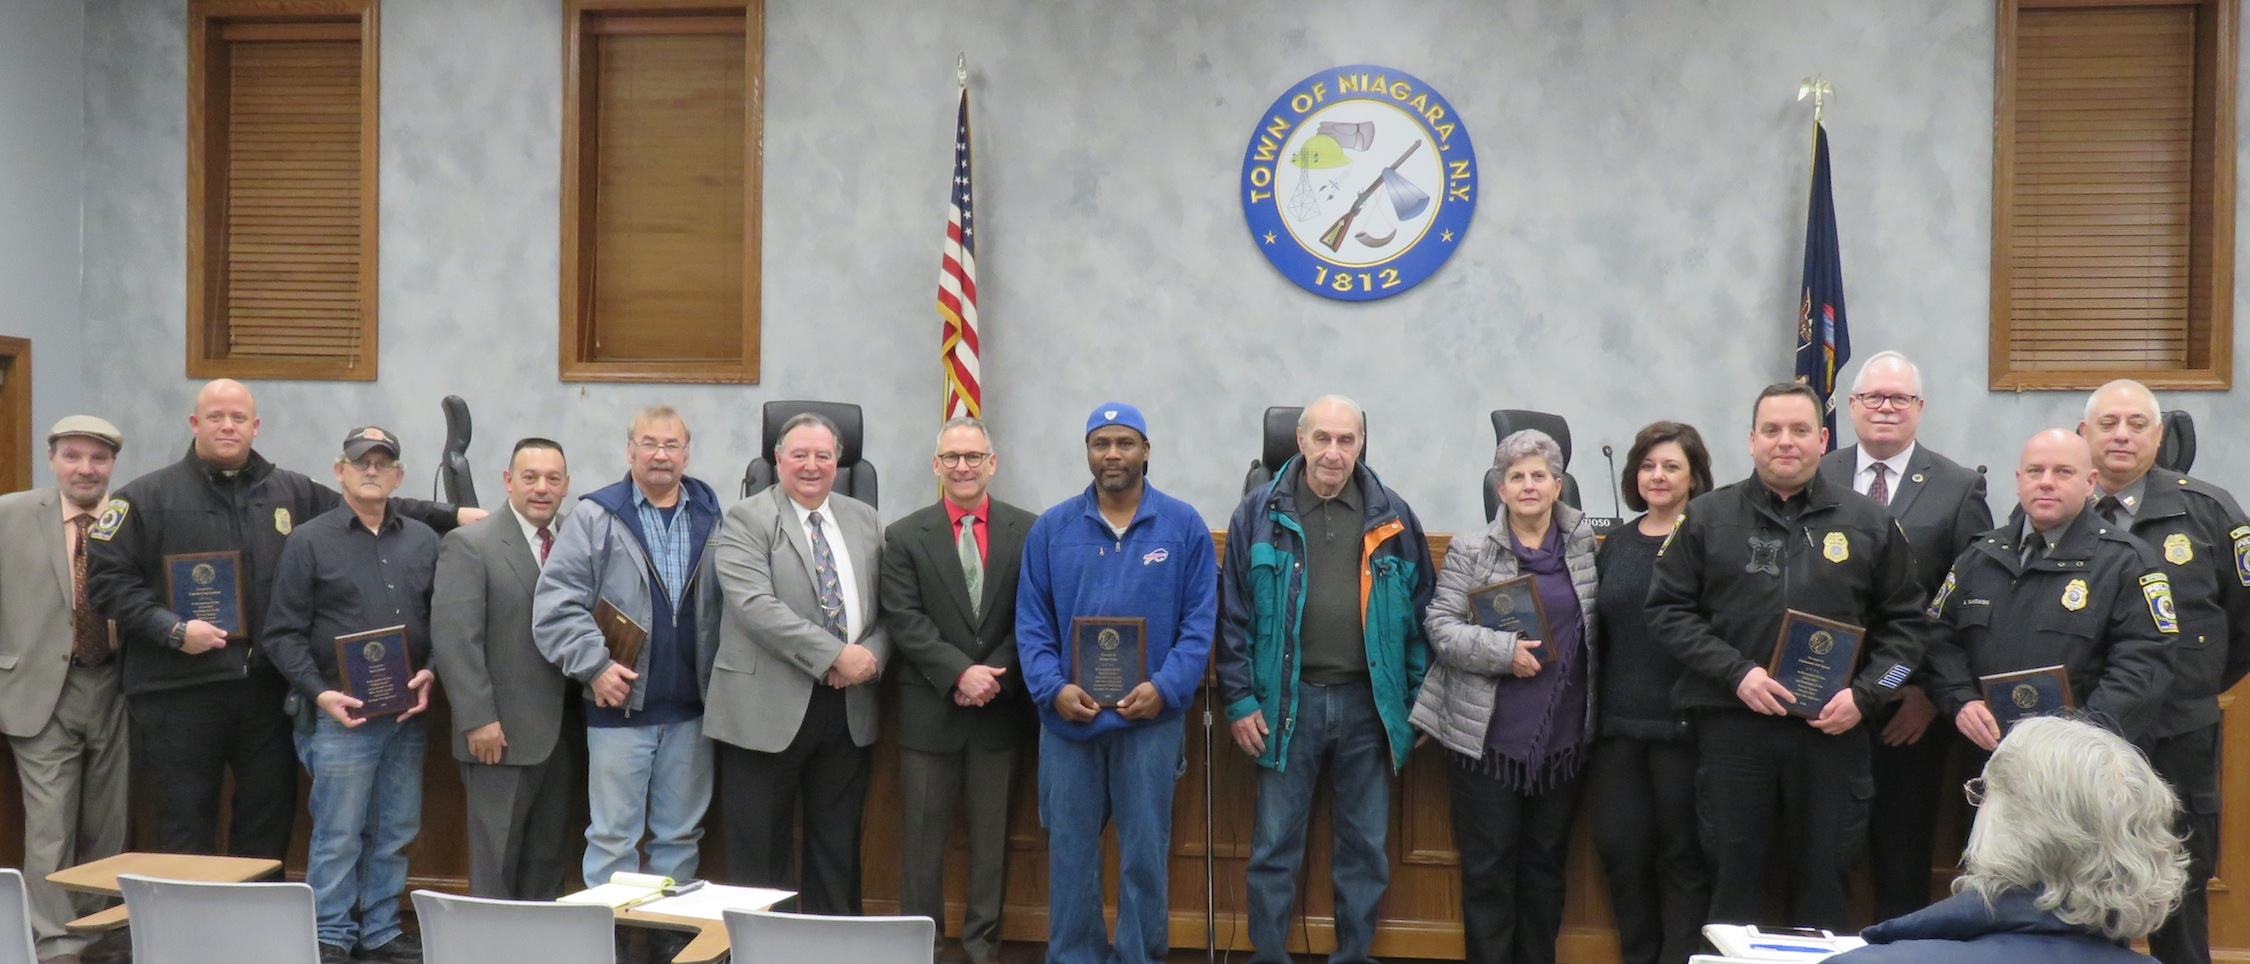 Pictured is the volunteers who were honored, along with the Town of Niagara Town Board at Tuesday's Town Board meeting.